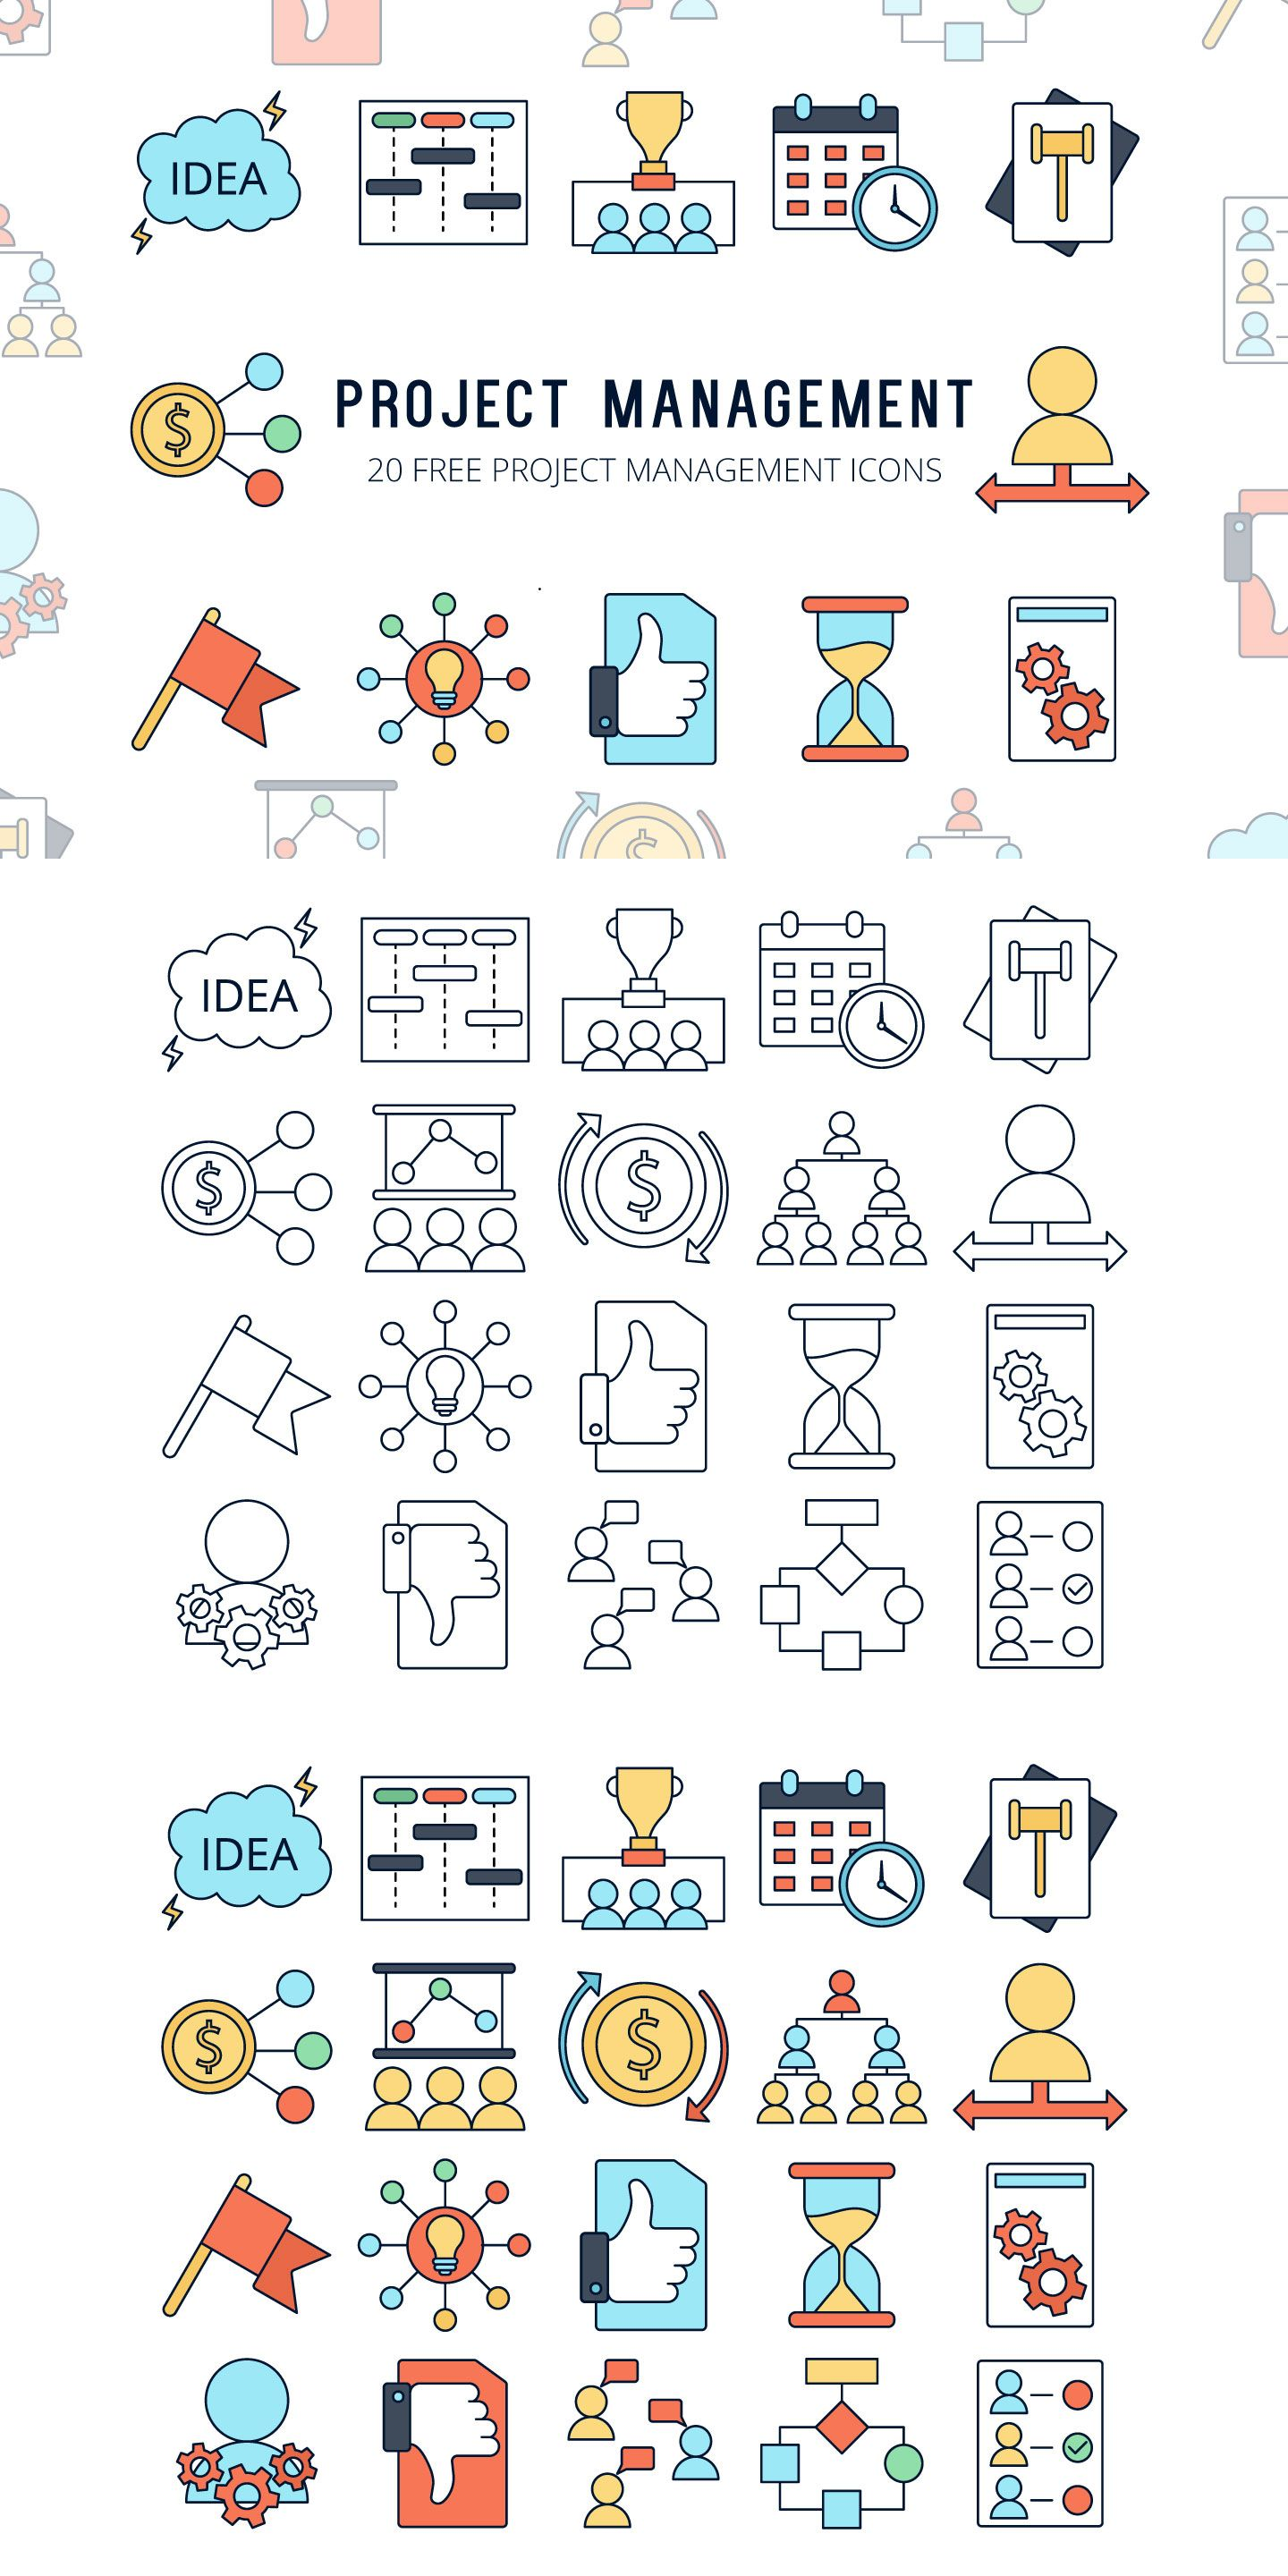 Project Management Vector Free Icon Set Icon set, Vector